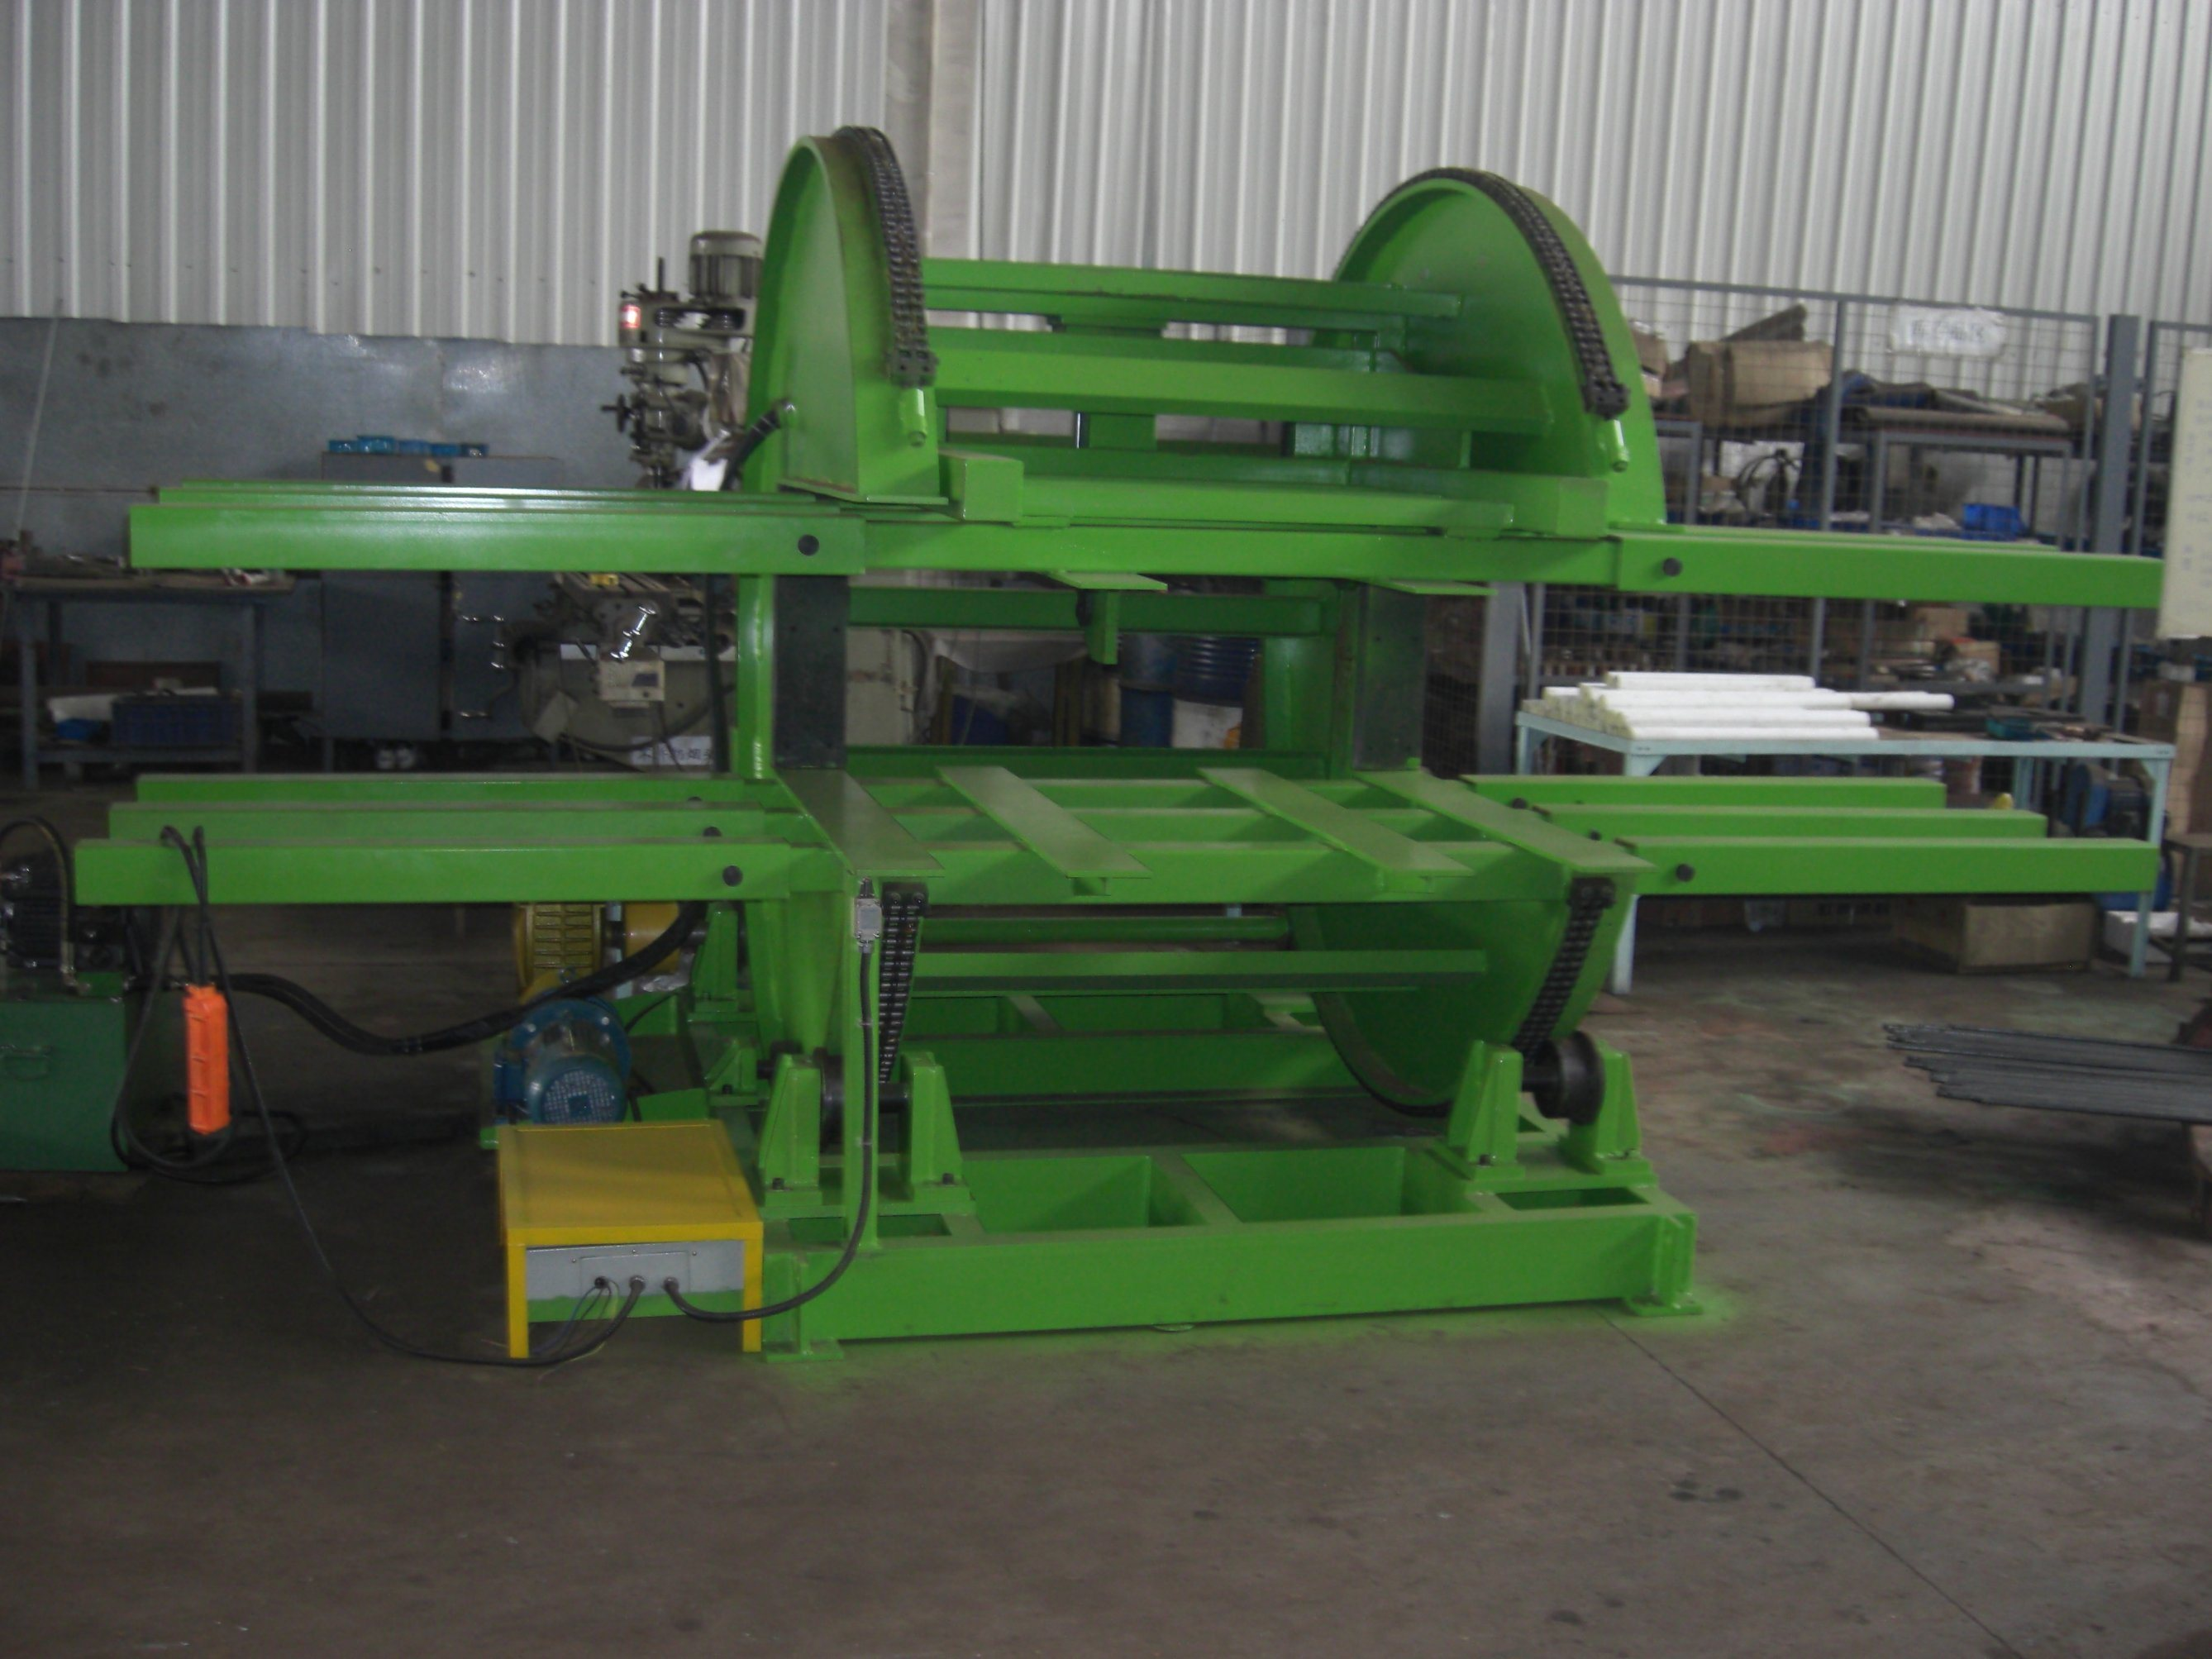 Hydraulic Pallet Tumbler (Plate Turnover Machine)